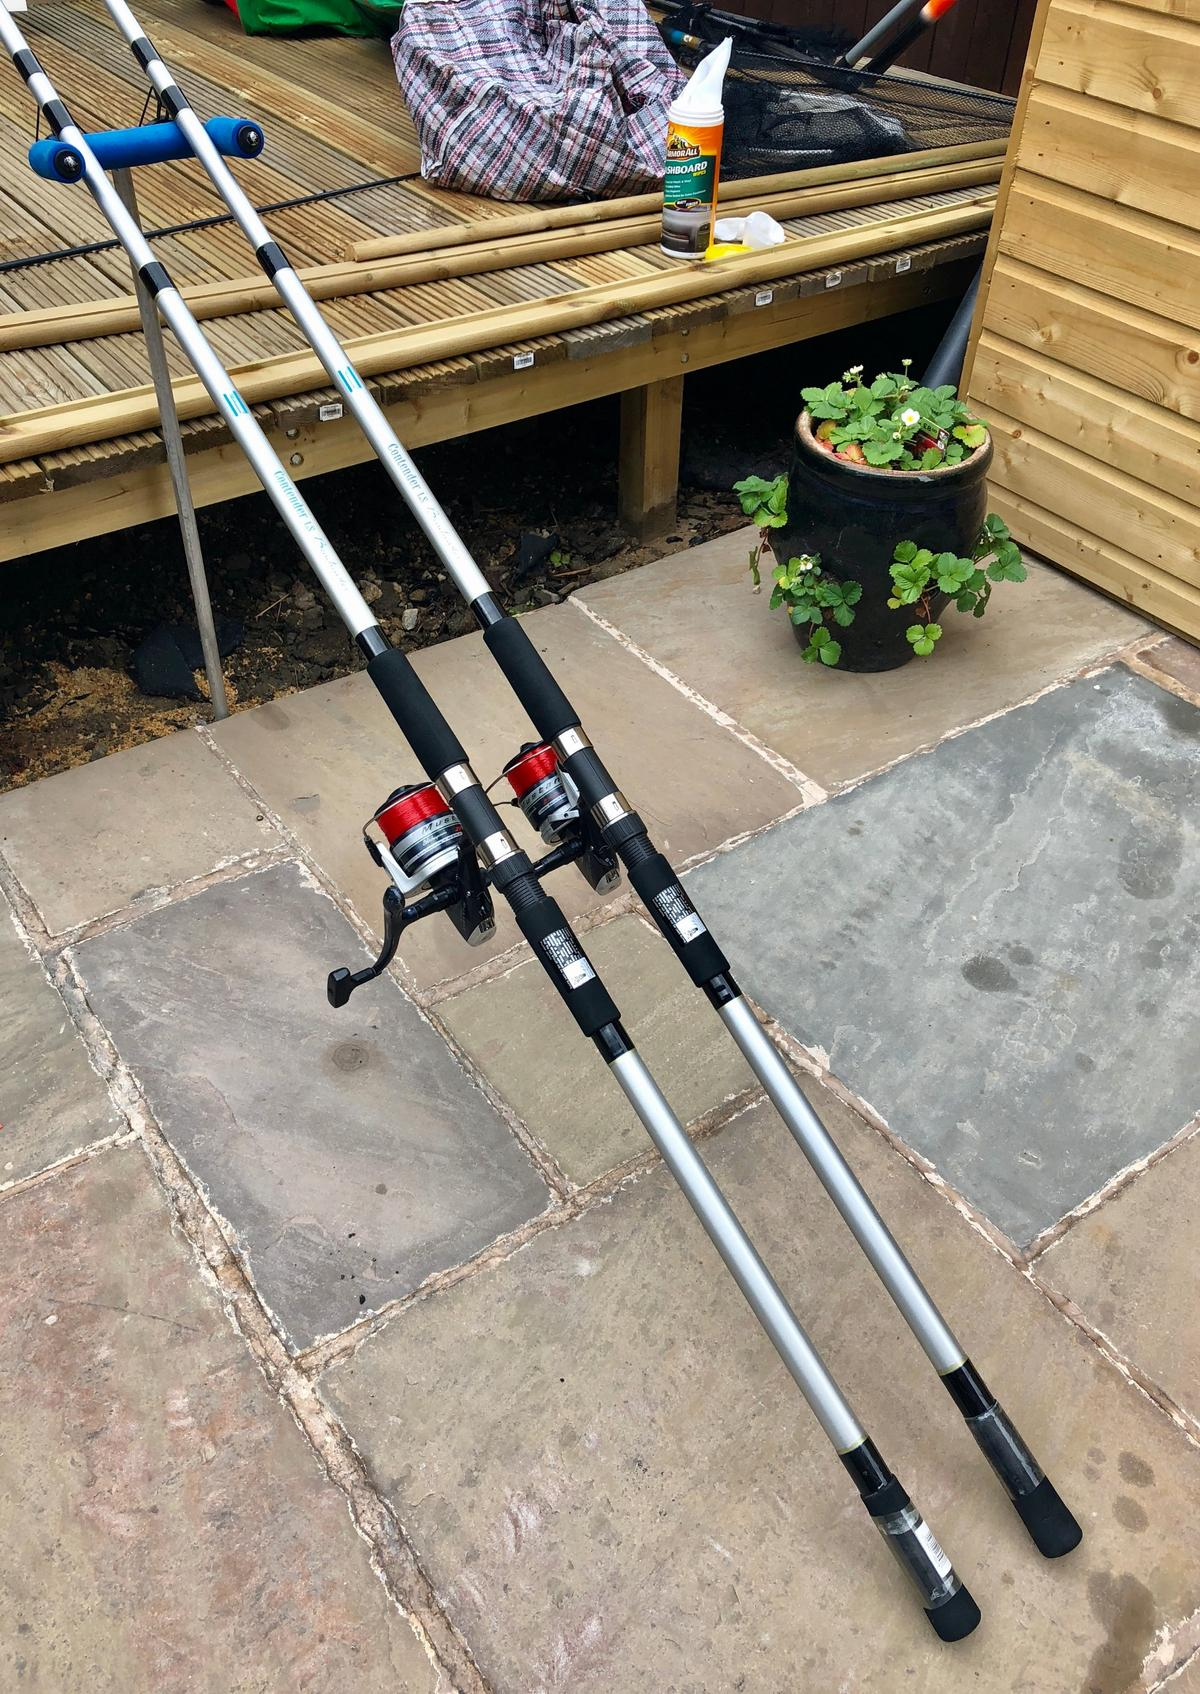 2 X SHAKESPEARE CONTENDER BEACHCASTER RODS + in WF1